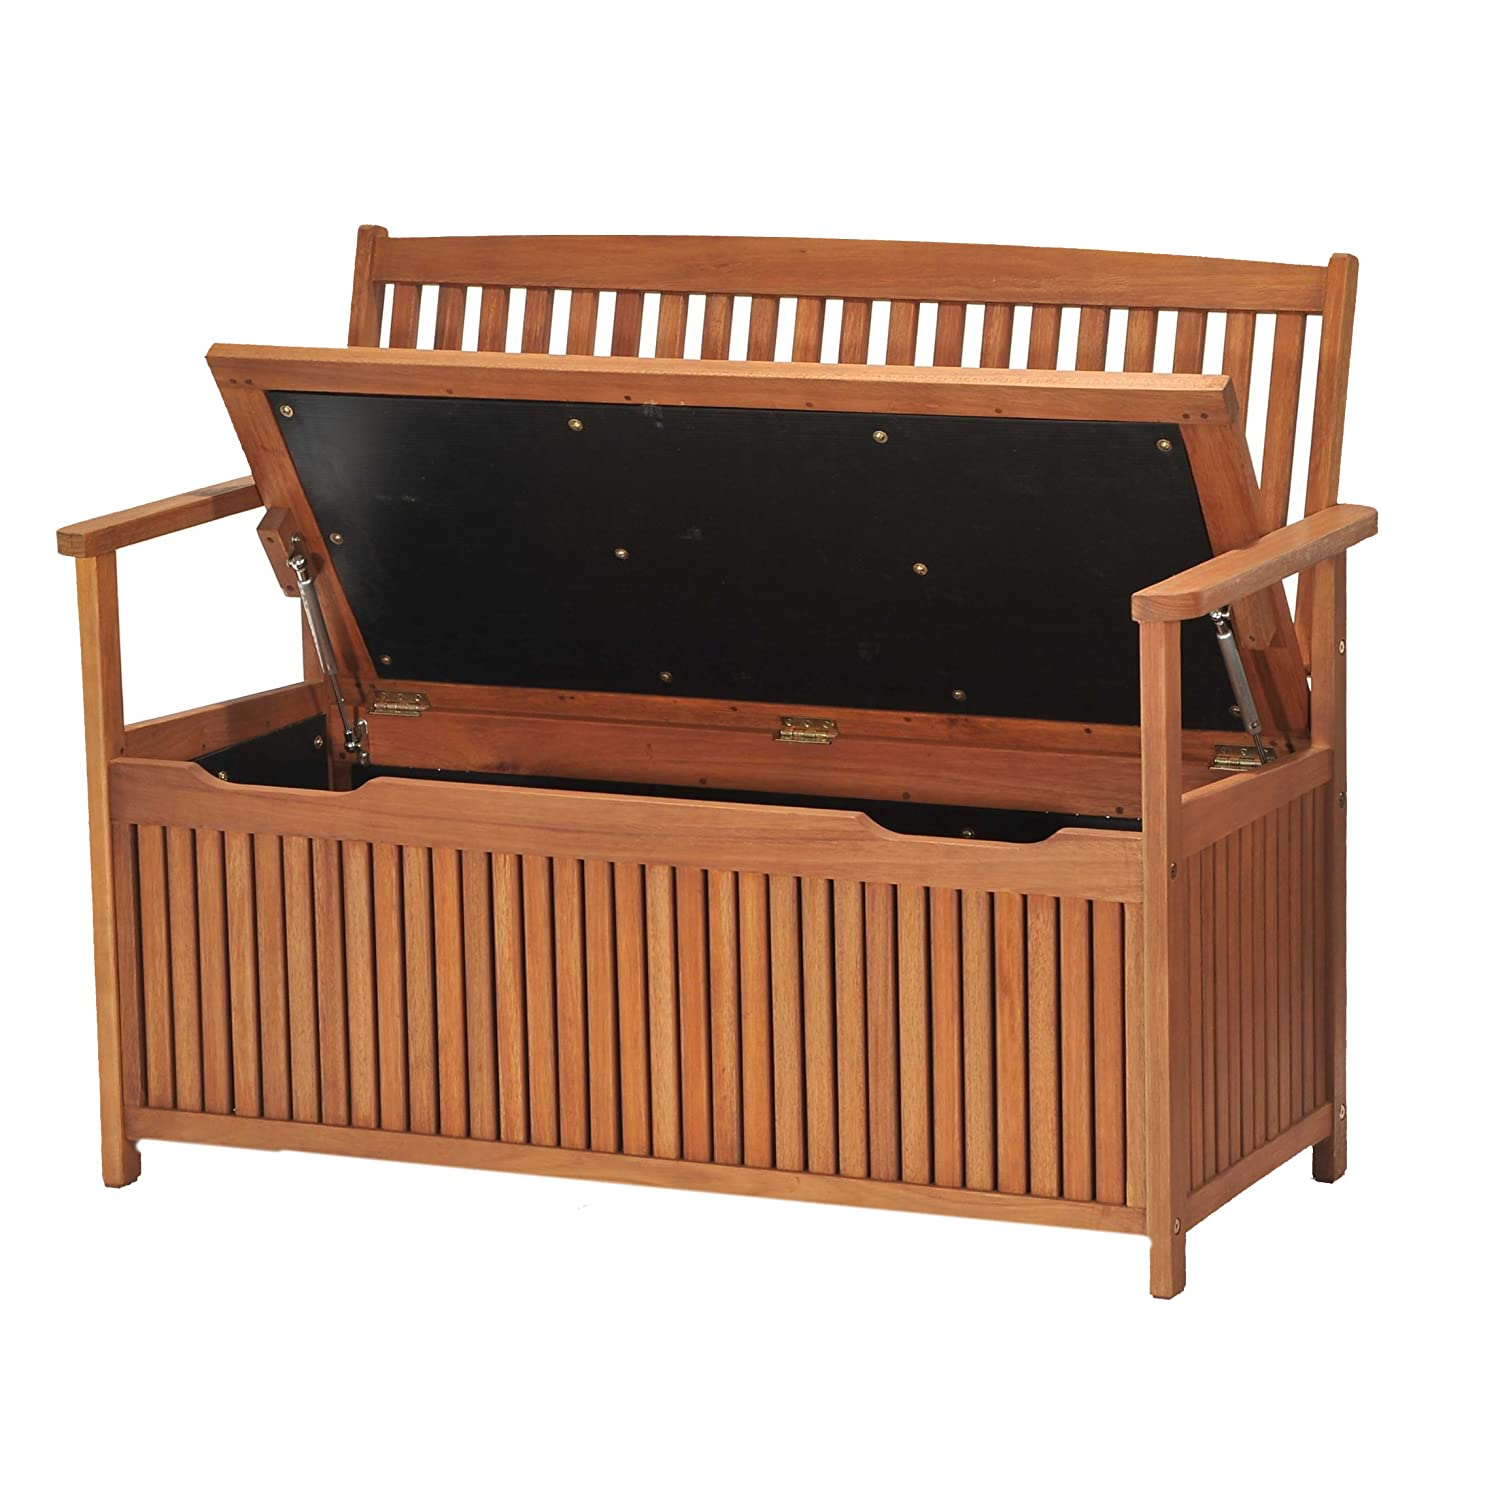 Outdoor wood storage bench Storage bench outdoor